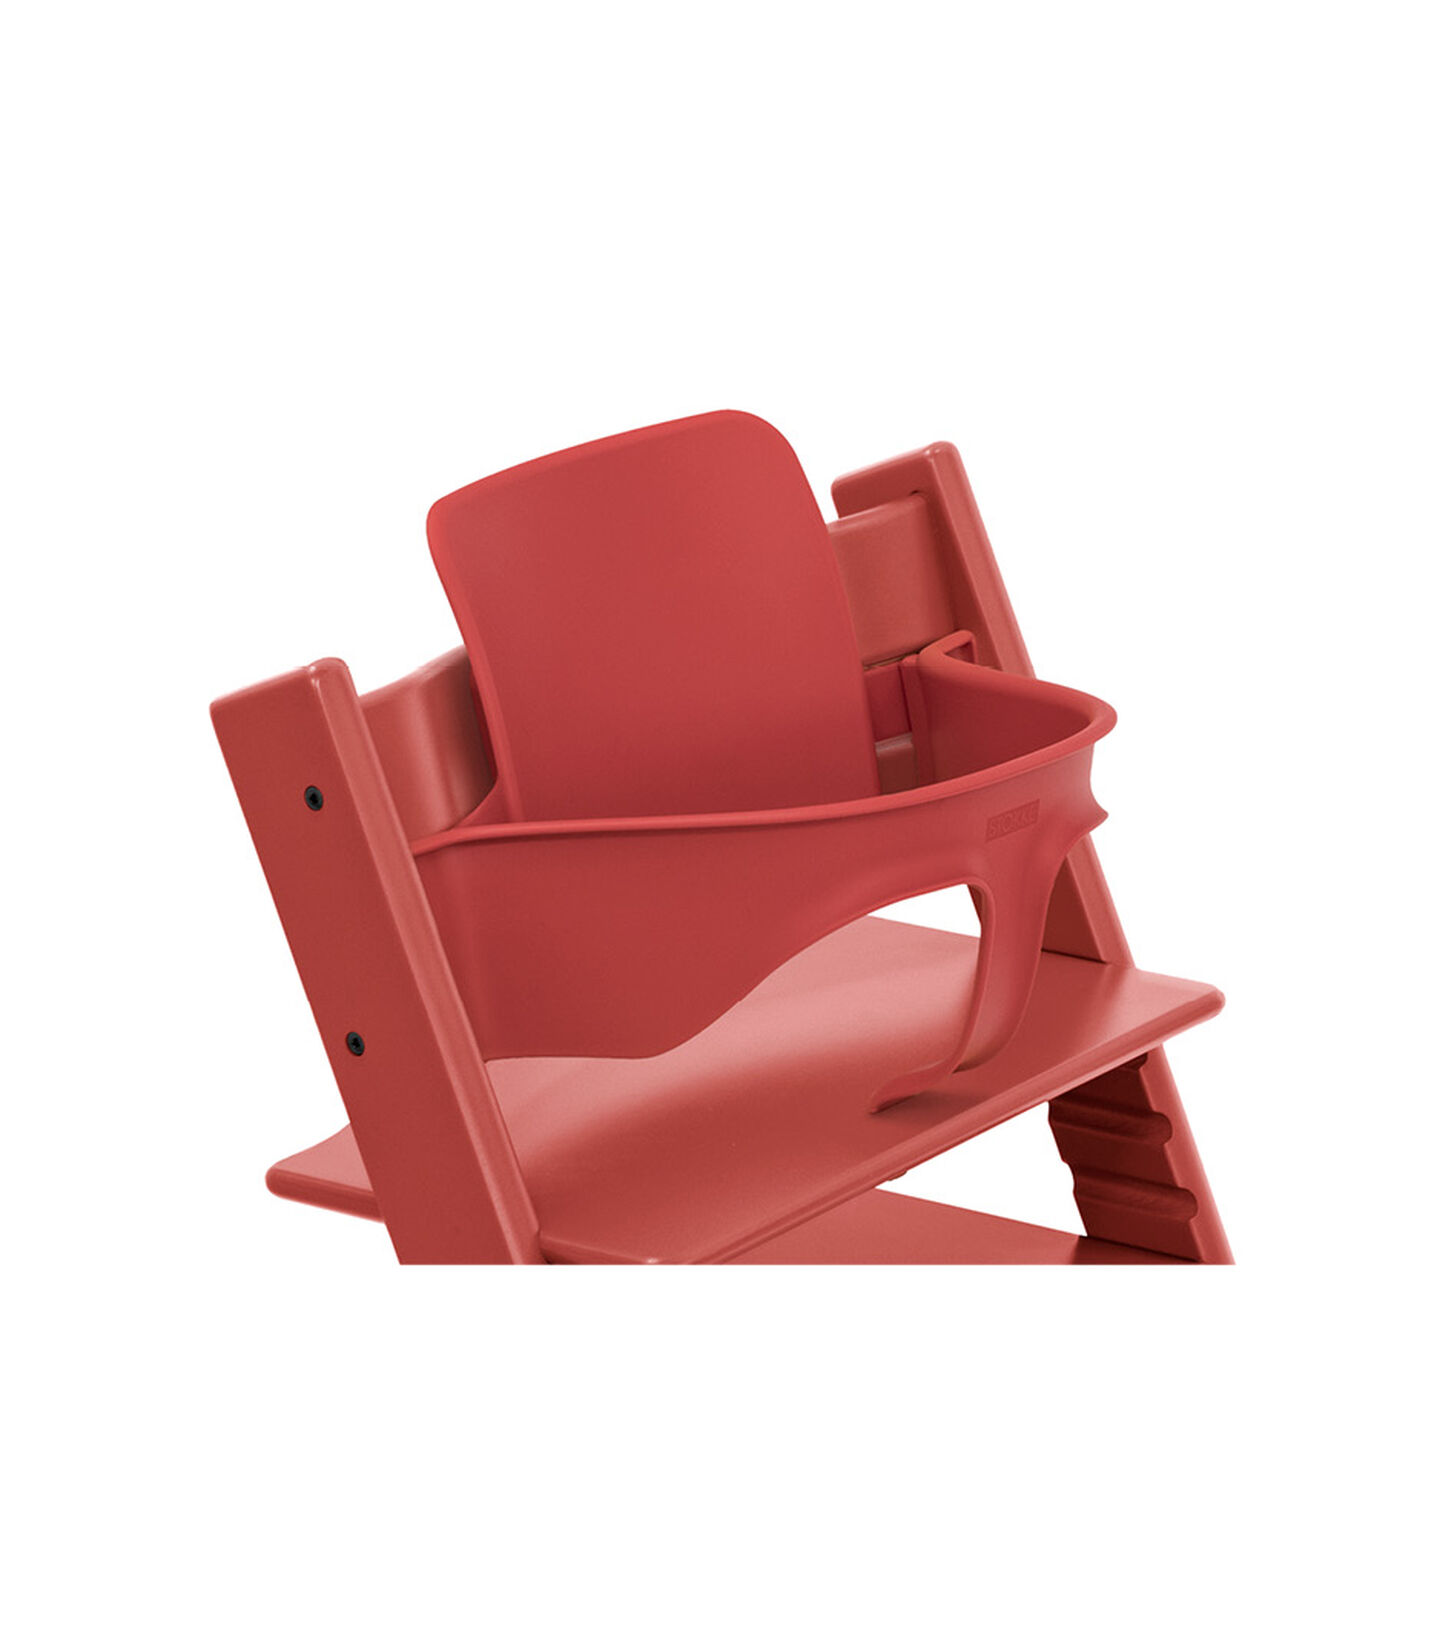 Tripp Trapp® chair Warm Red, Beech Wood, with Baby Set. Close-up. view 1